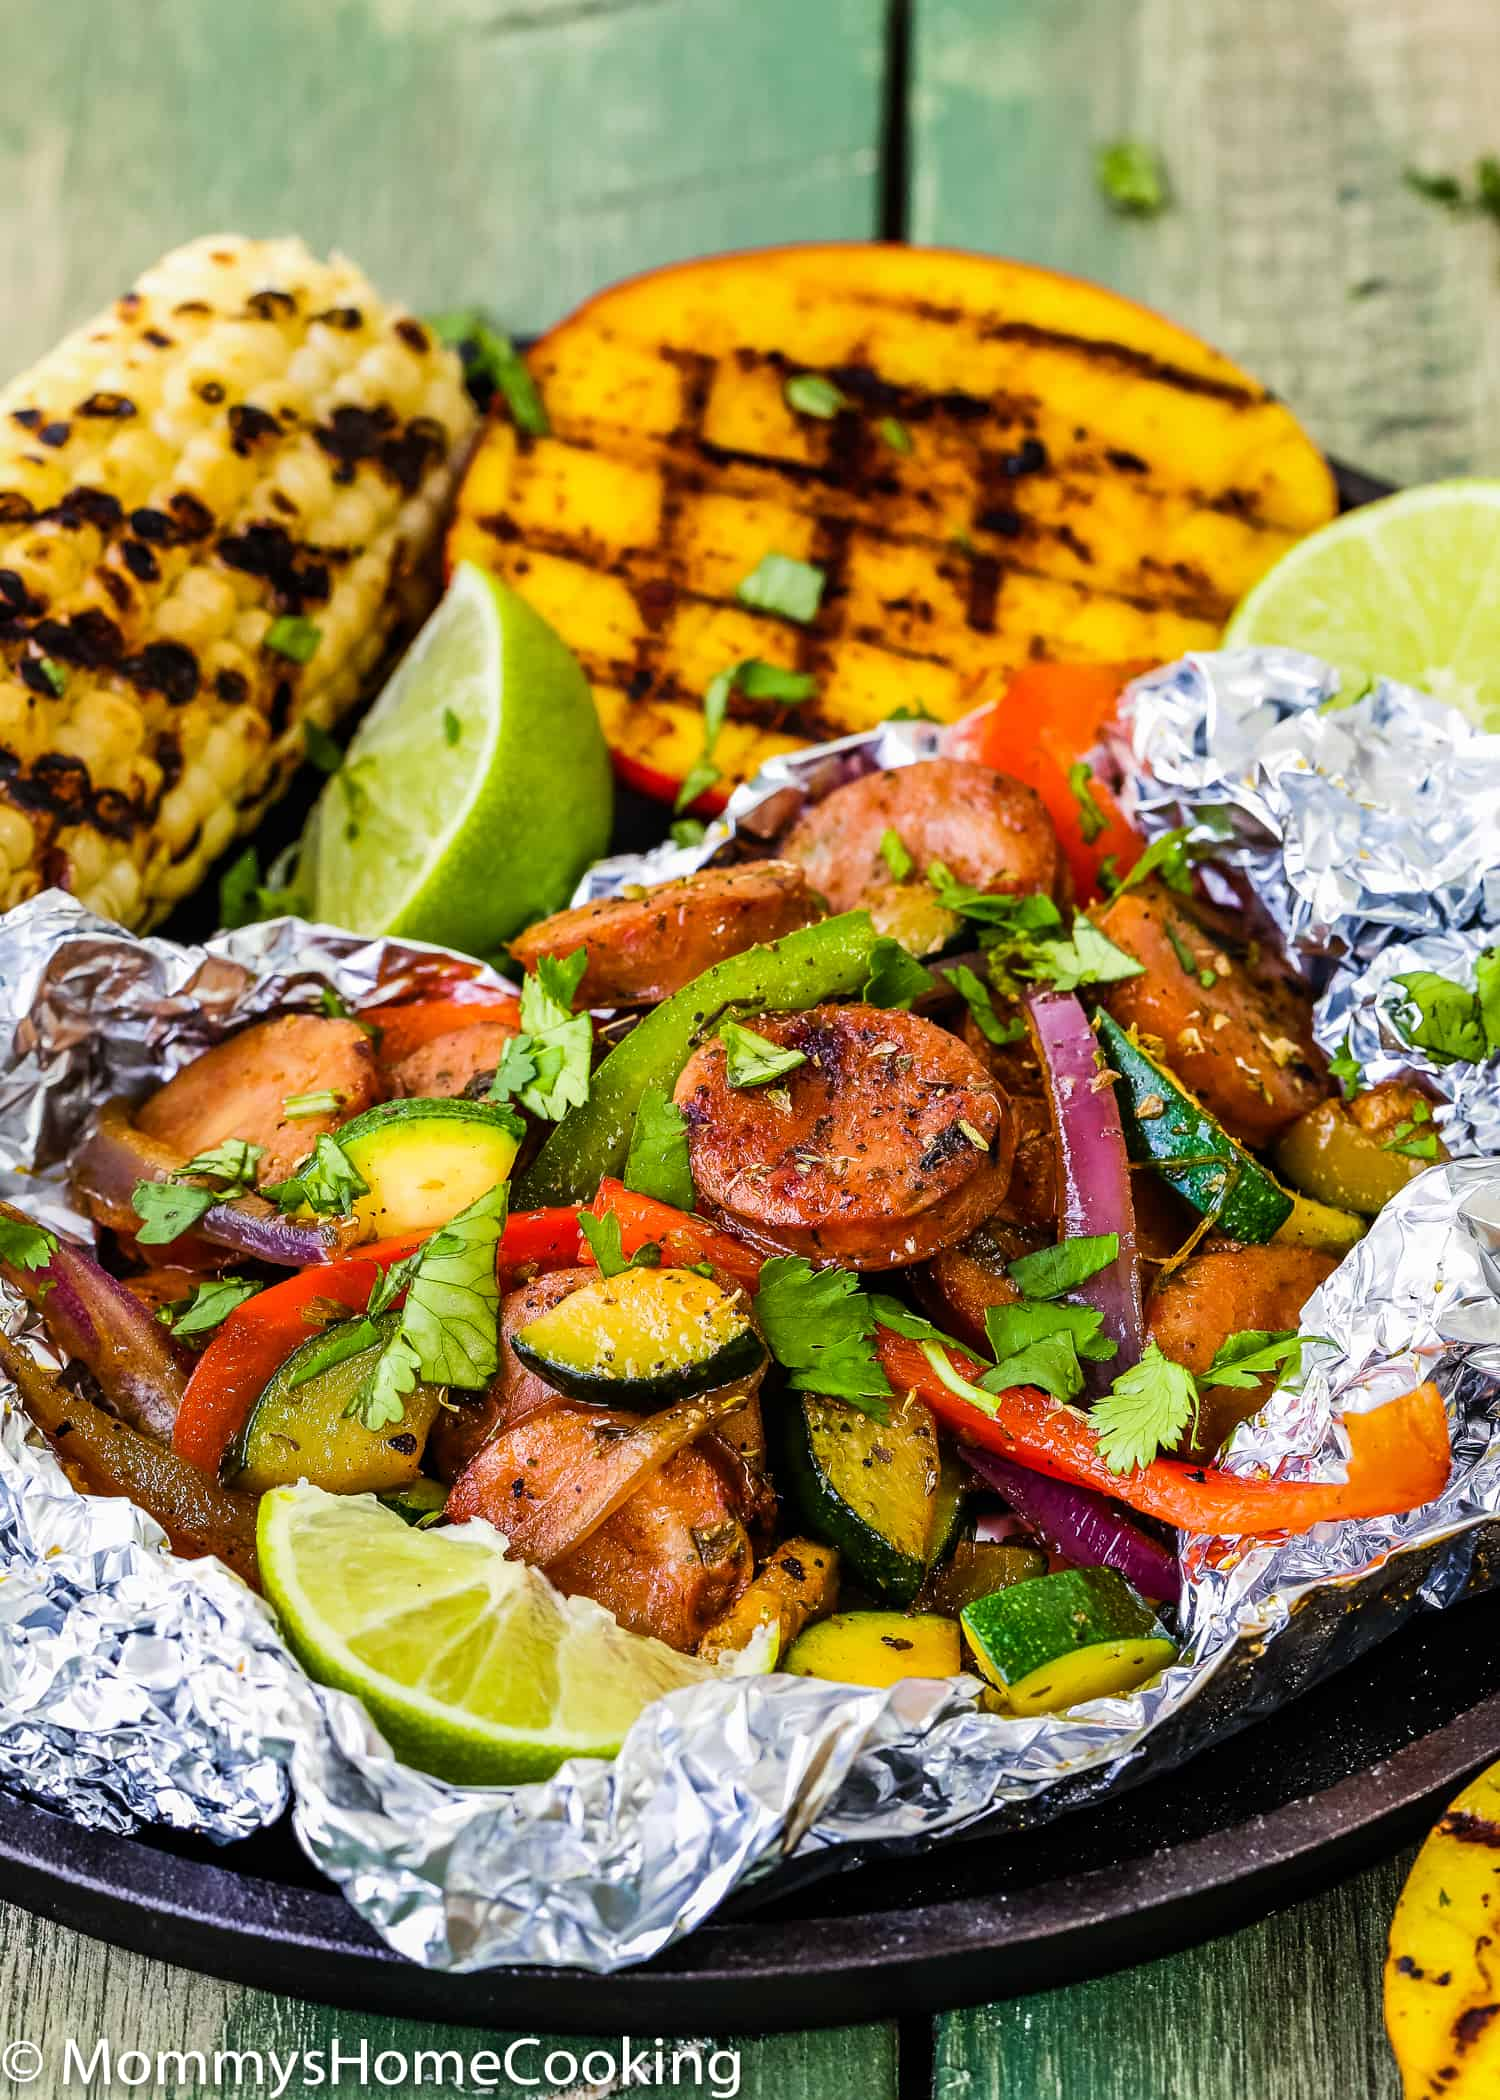 These Easy Sausage and Veggies Foil Packets with Grilled Chipotle Mangoes are perfect for grilling in the backyard or cooking on camping trips! No fuss. No cleaning involved. Plus, they're fun to make. Grill and oven instructions included.  https://mommyshomecooking.com